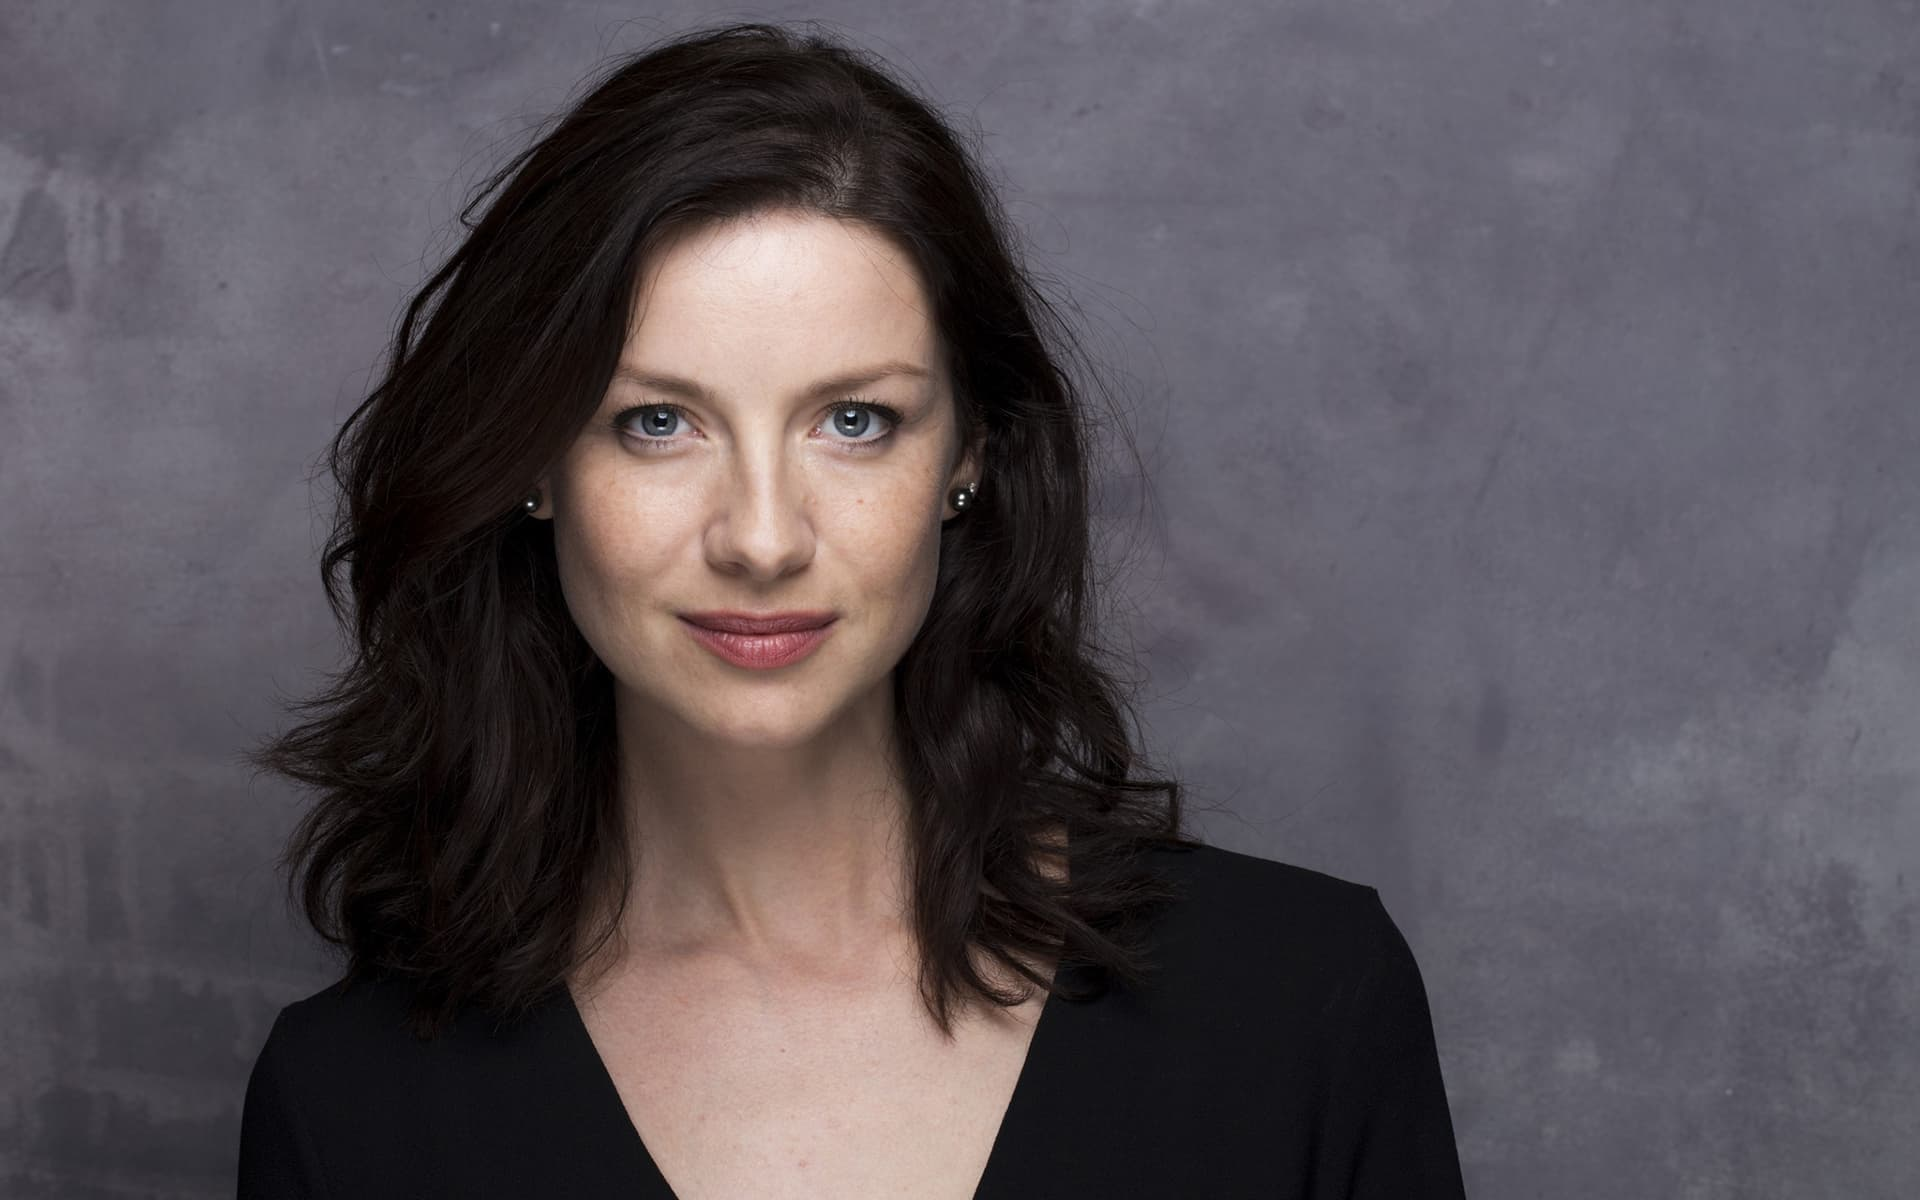 caitriona balfe wallpapers hd high quality resolution